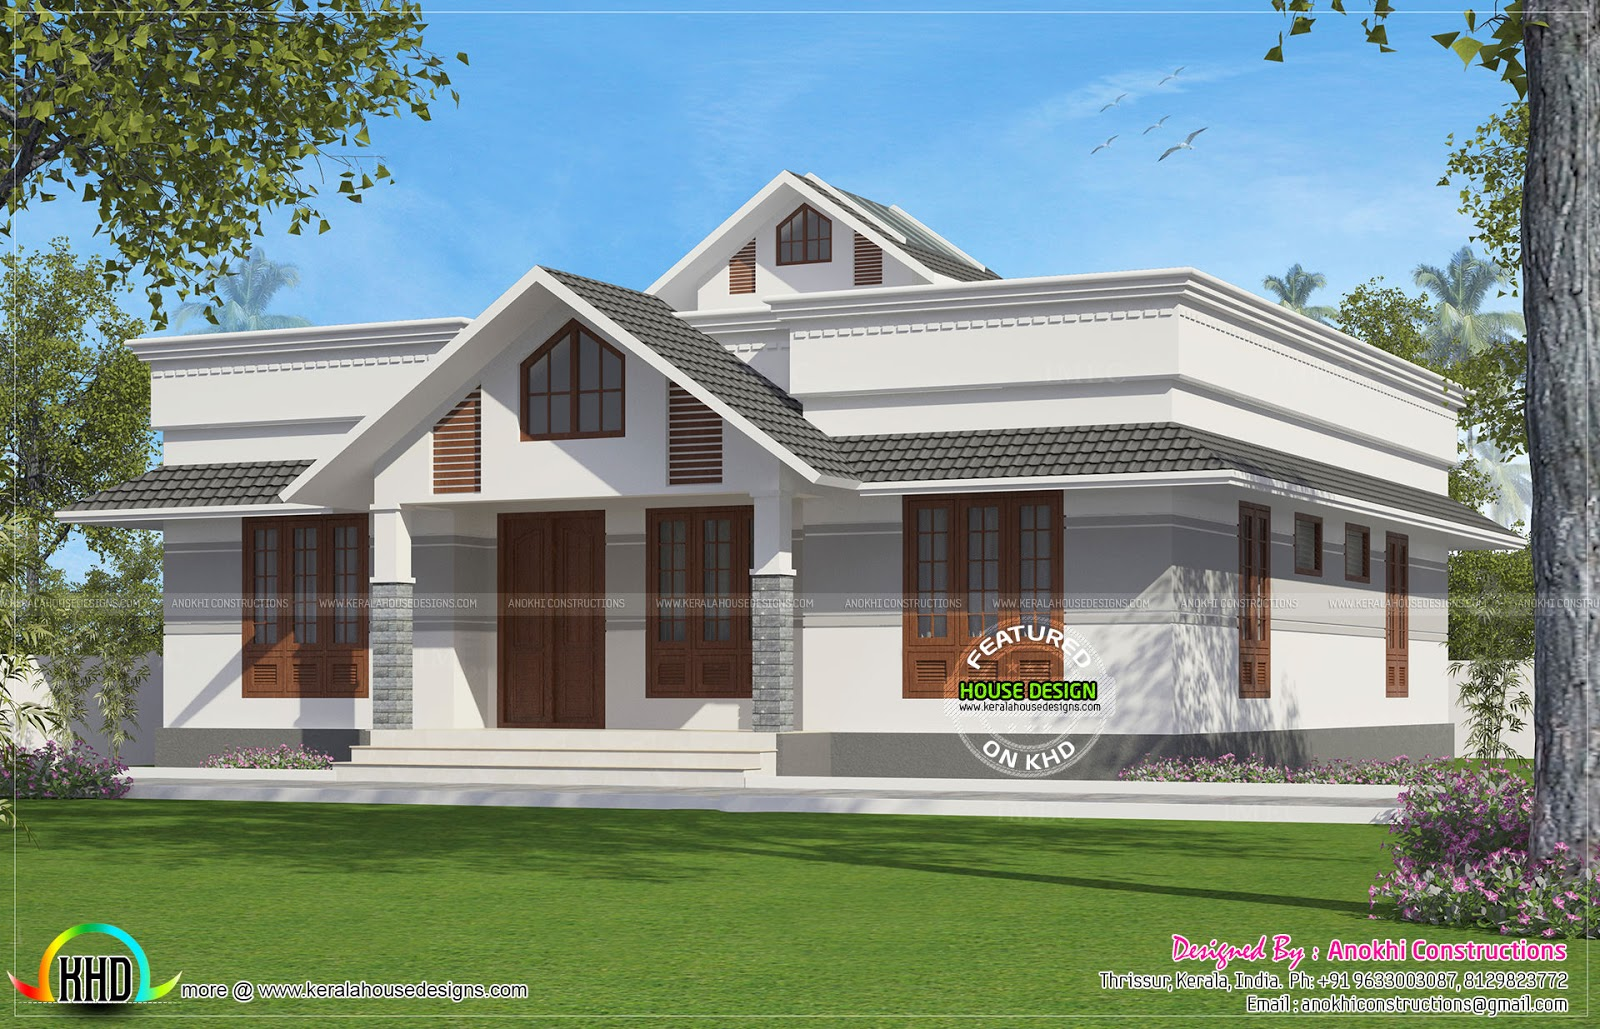 1330 square feet small house plan kerala home design and for Small house plans and designs